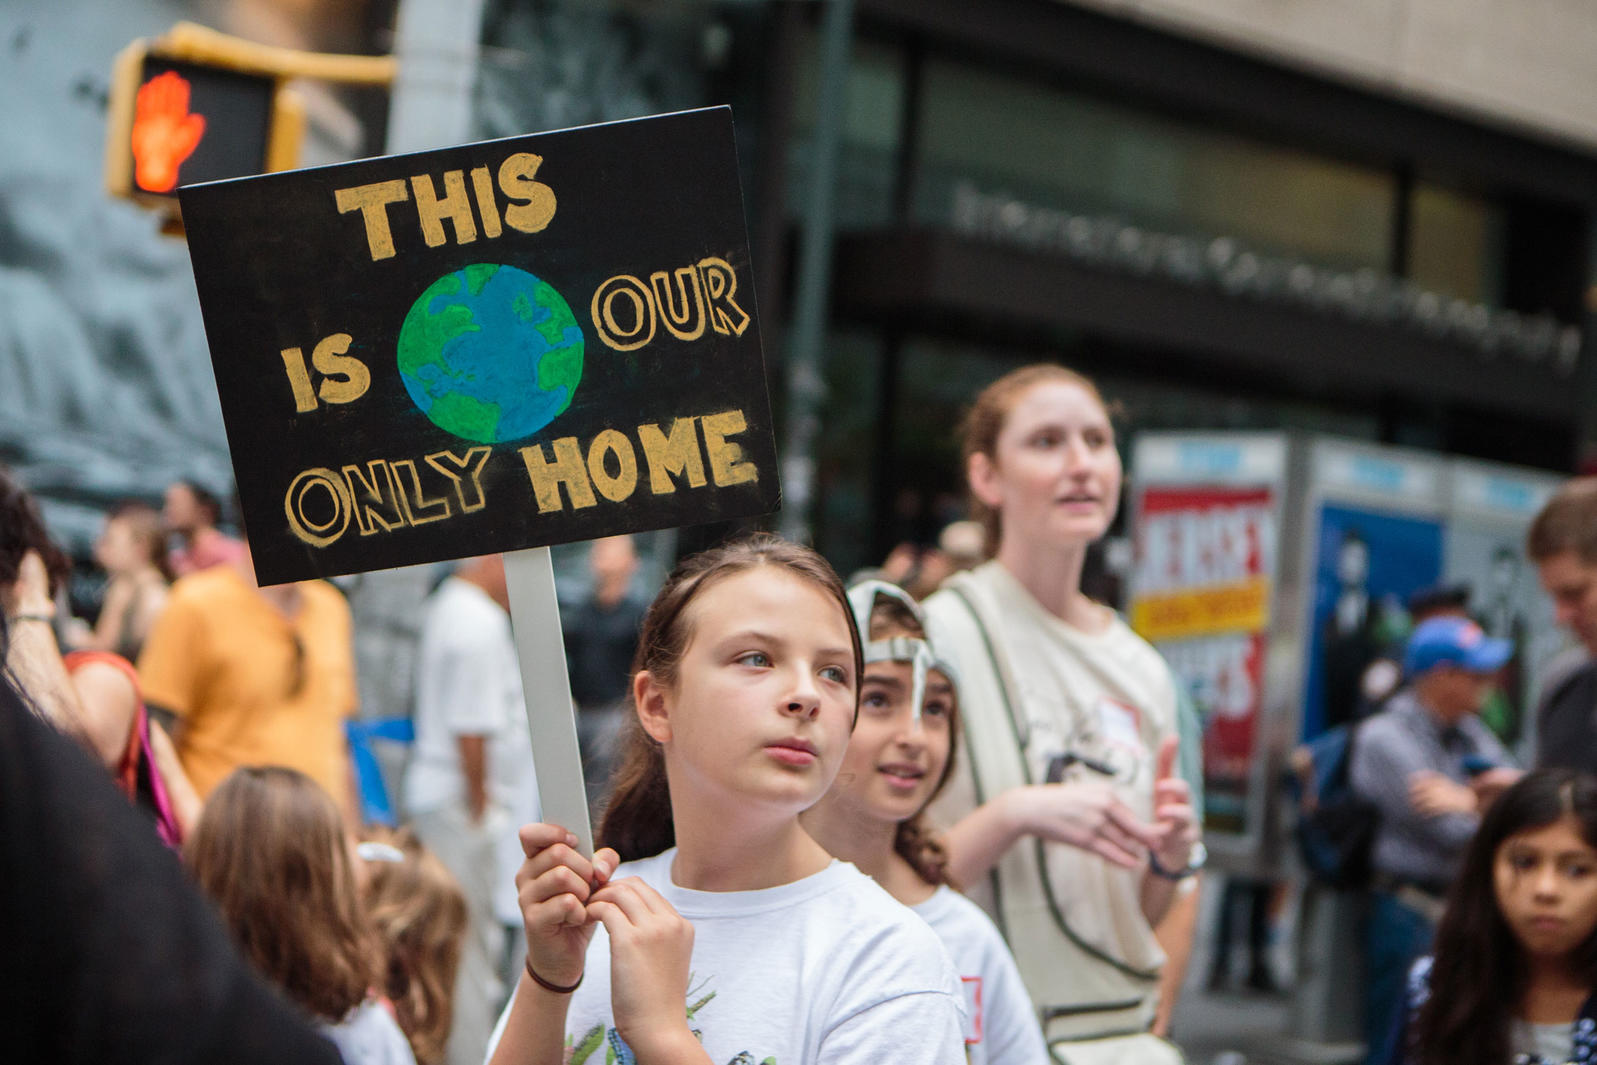 Demonstrators at the People's Climate March in 2014. Many faith groups also participated in the march, which was the largest climate protest in history. Patricia Monteiro